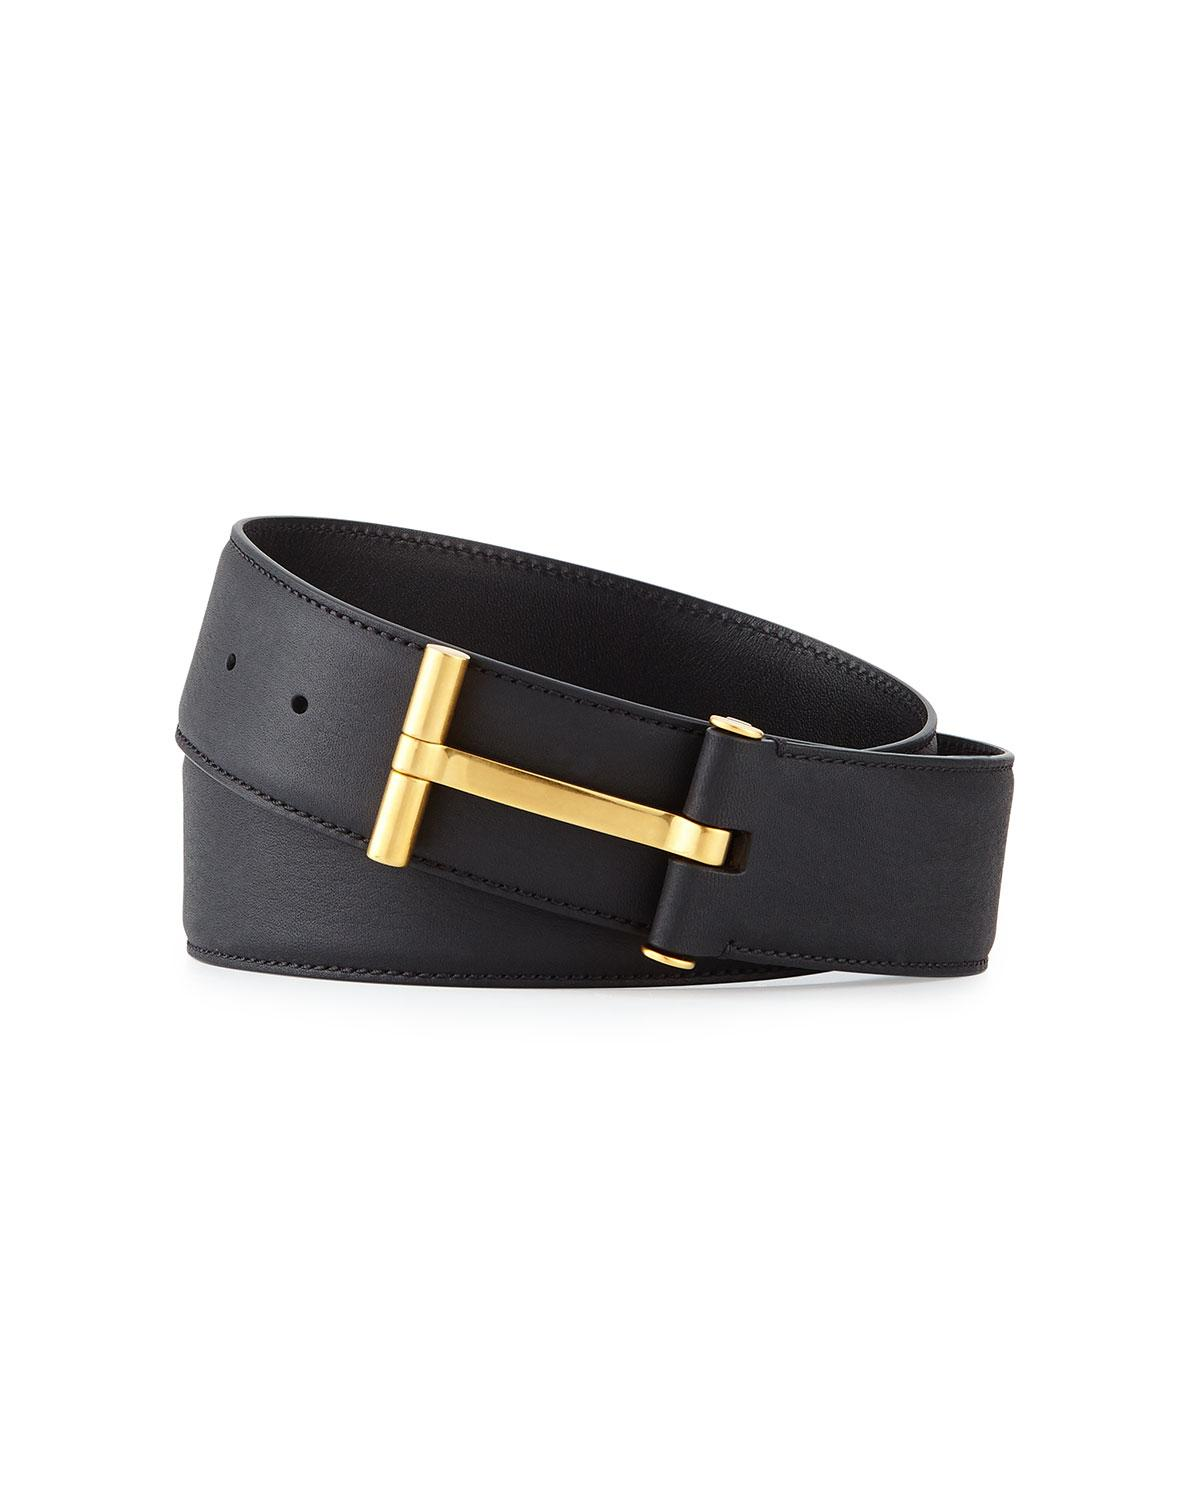 tom ford t buckle calf leather belt in black lyst